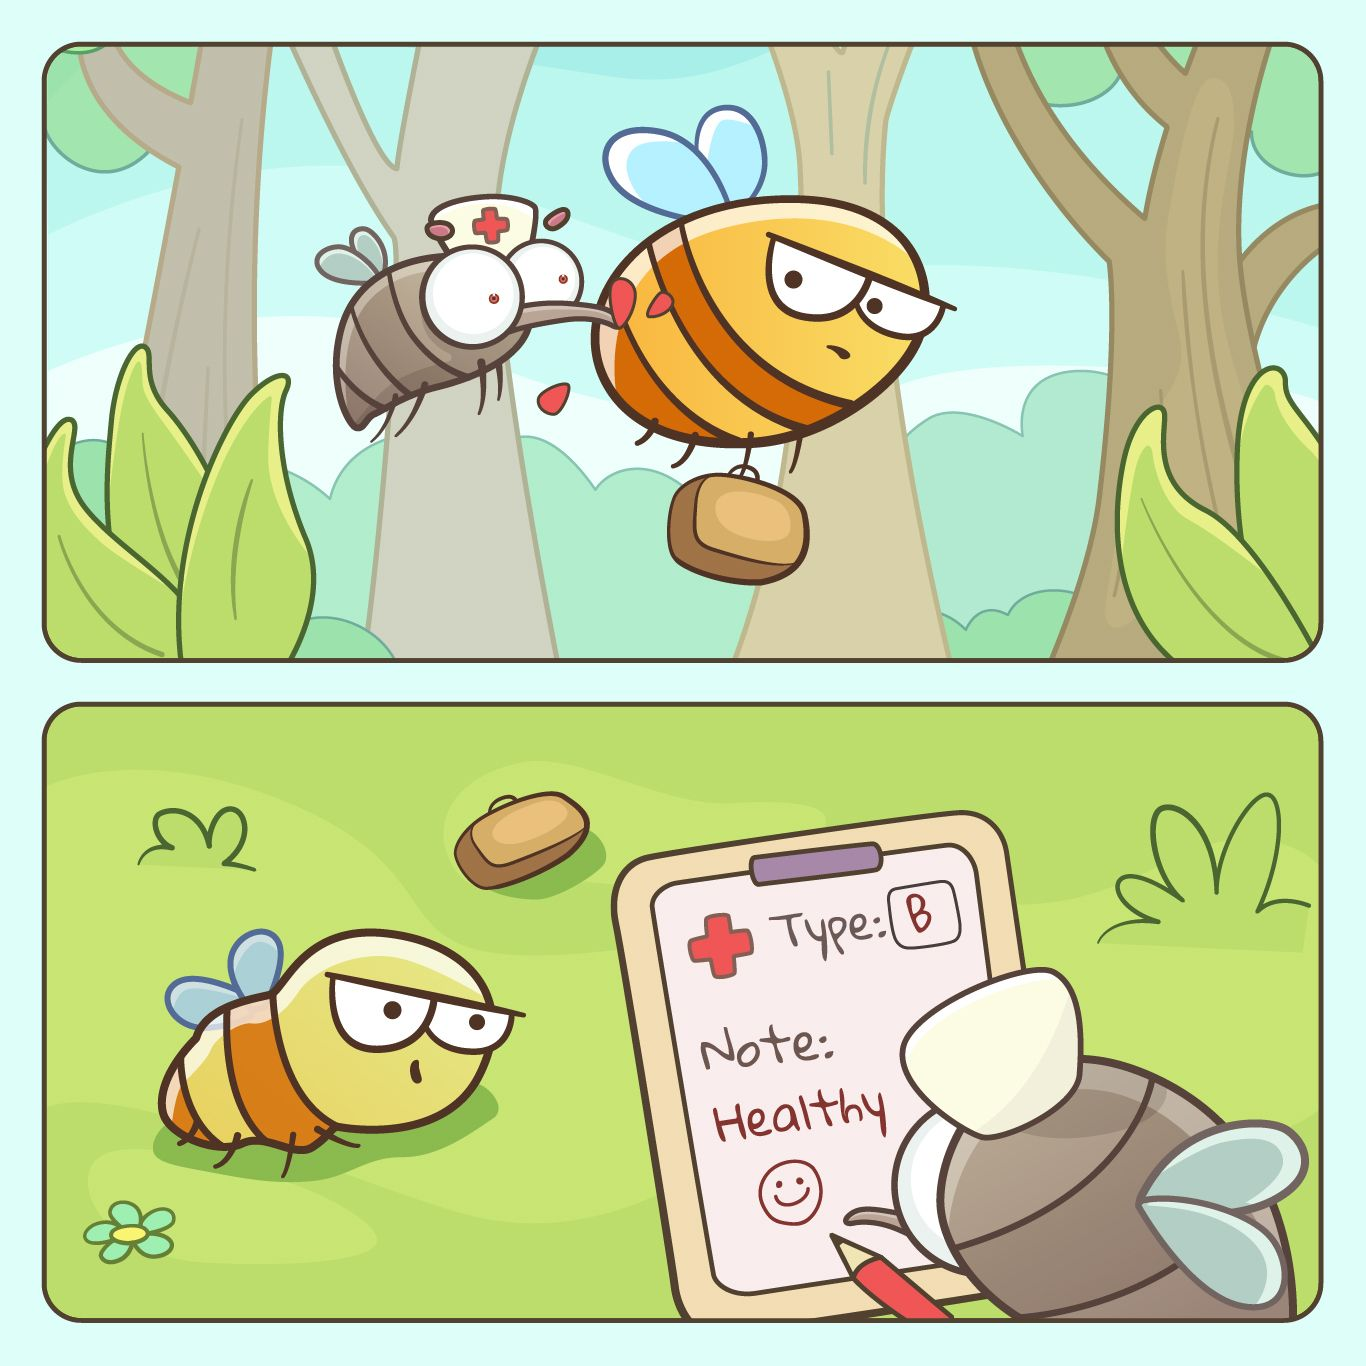 #comic #cutecomics #cutecomic #animalcomics #animalcomic #naturecomics #cuteandfunny #sillyanimals #funnycomics #webcomics #cutecartoons #comicpage #digitalart #energyvampires #leeches #mosquitos #noenergy #bloodtest #healthcheckup #healthcheck